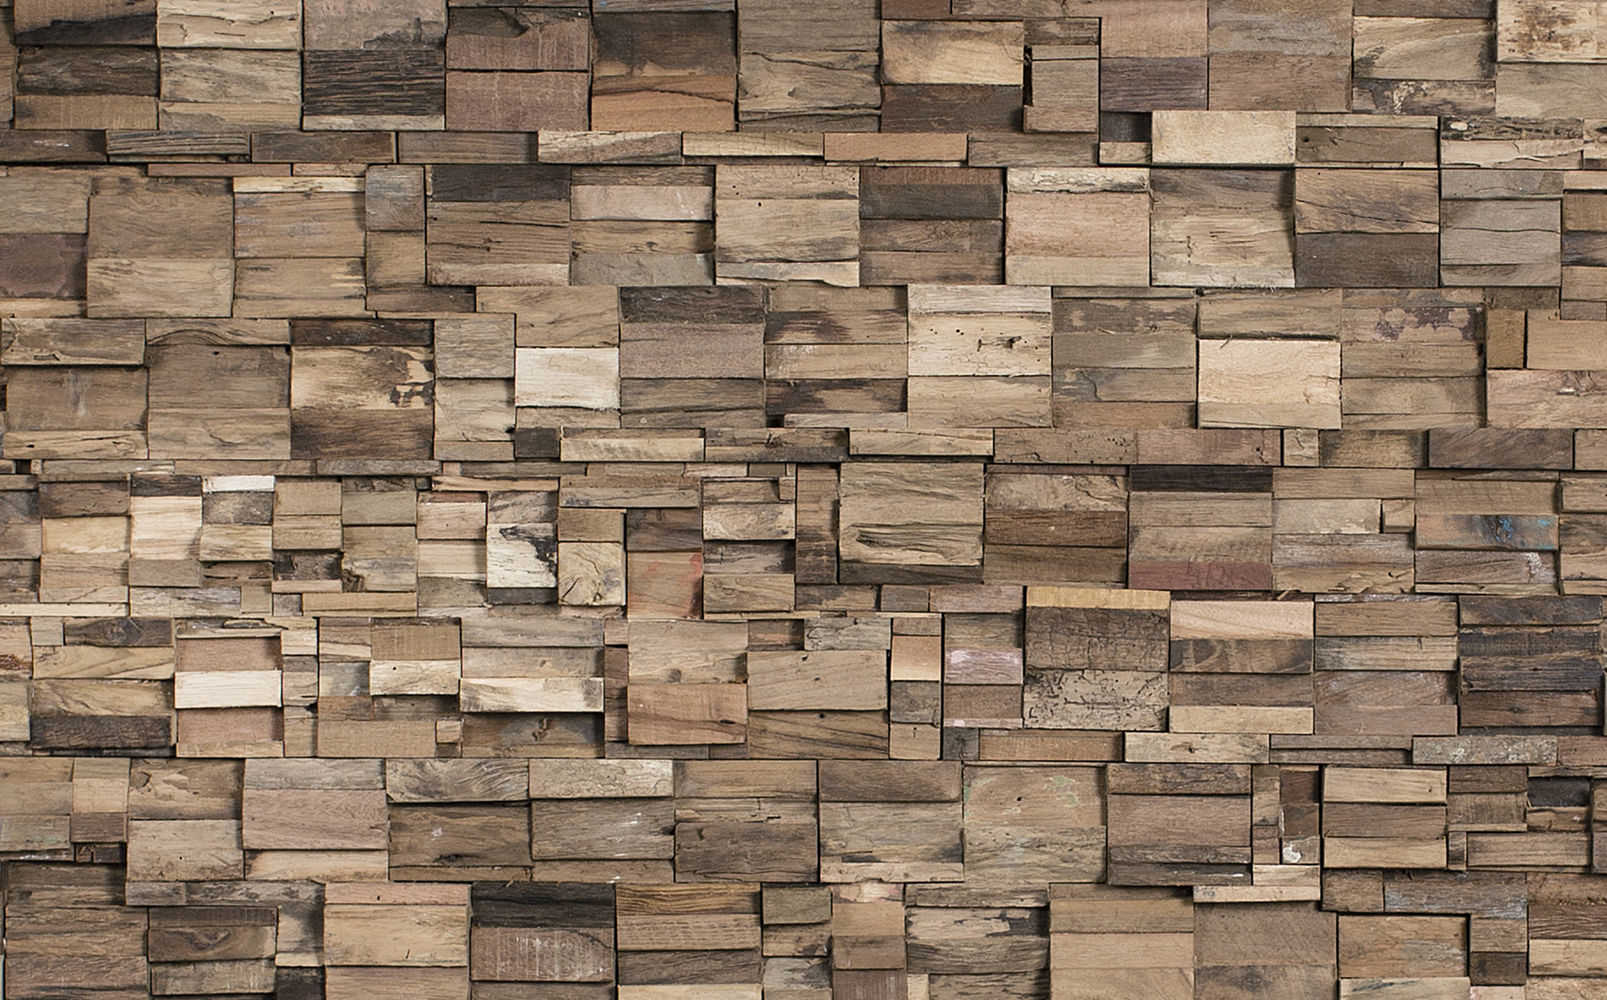 Bb wall decor collection bbdecor contractor for hotels and resorts - Decorative wall paneling designs ...